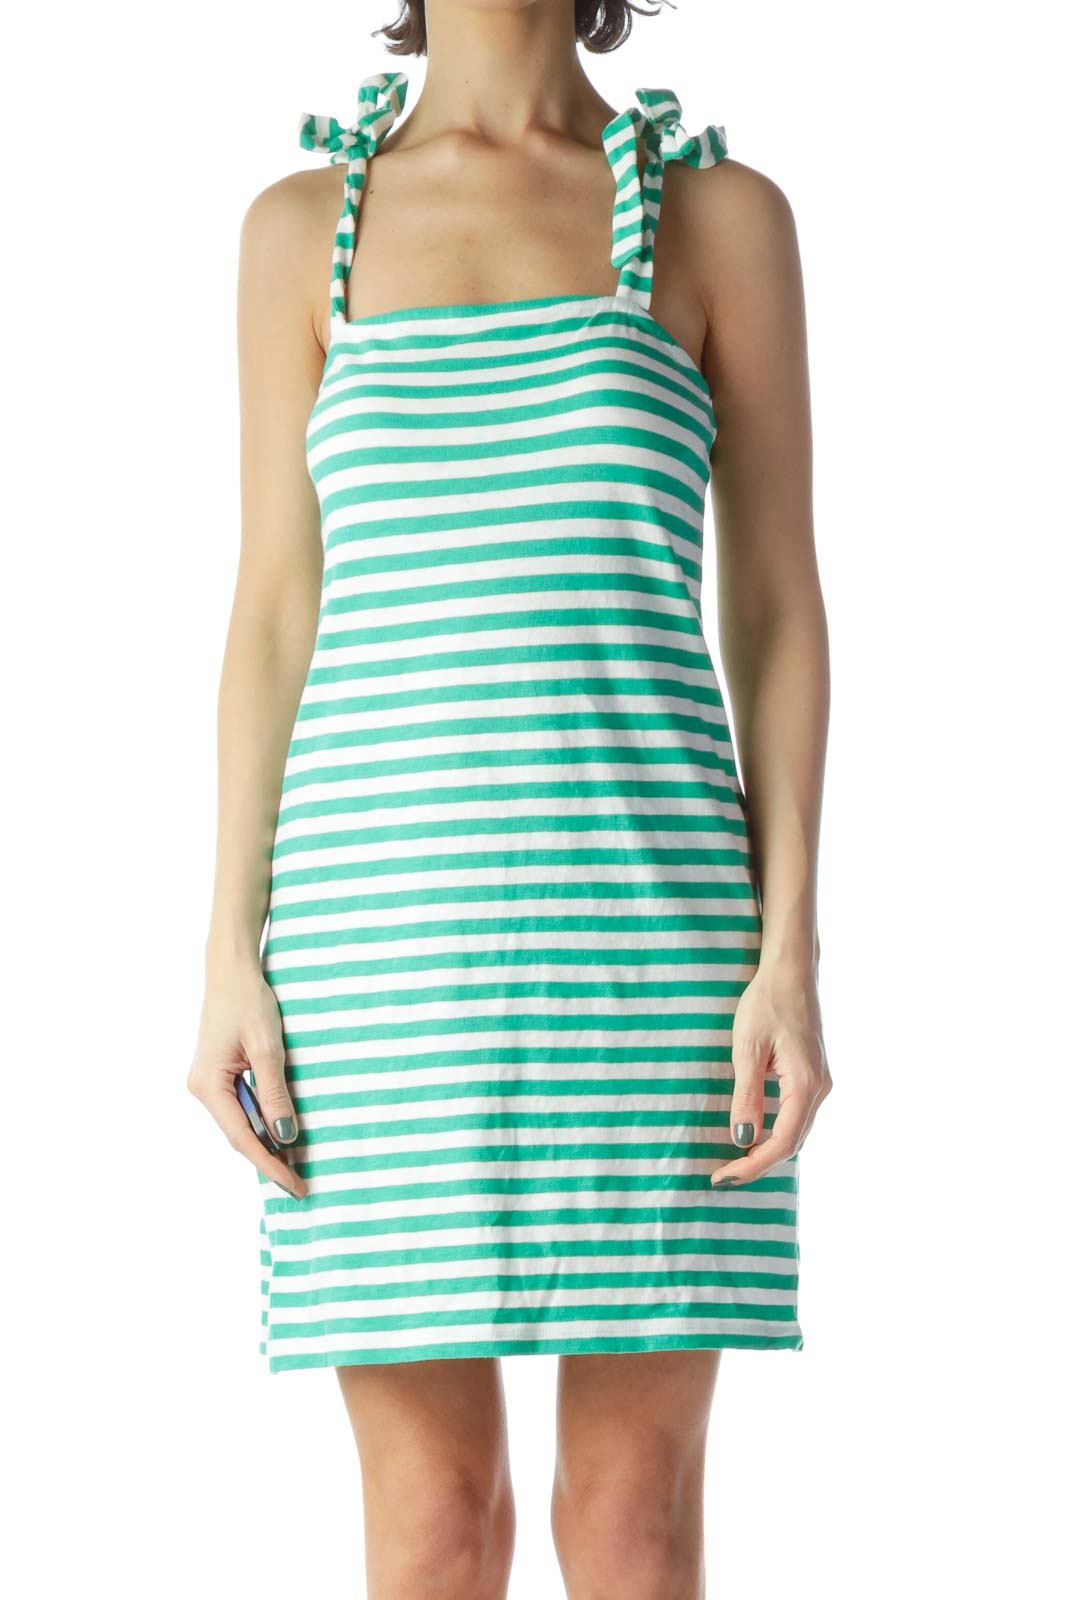 Mint Green White Striped 100% Cotton Dress